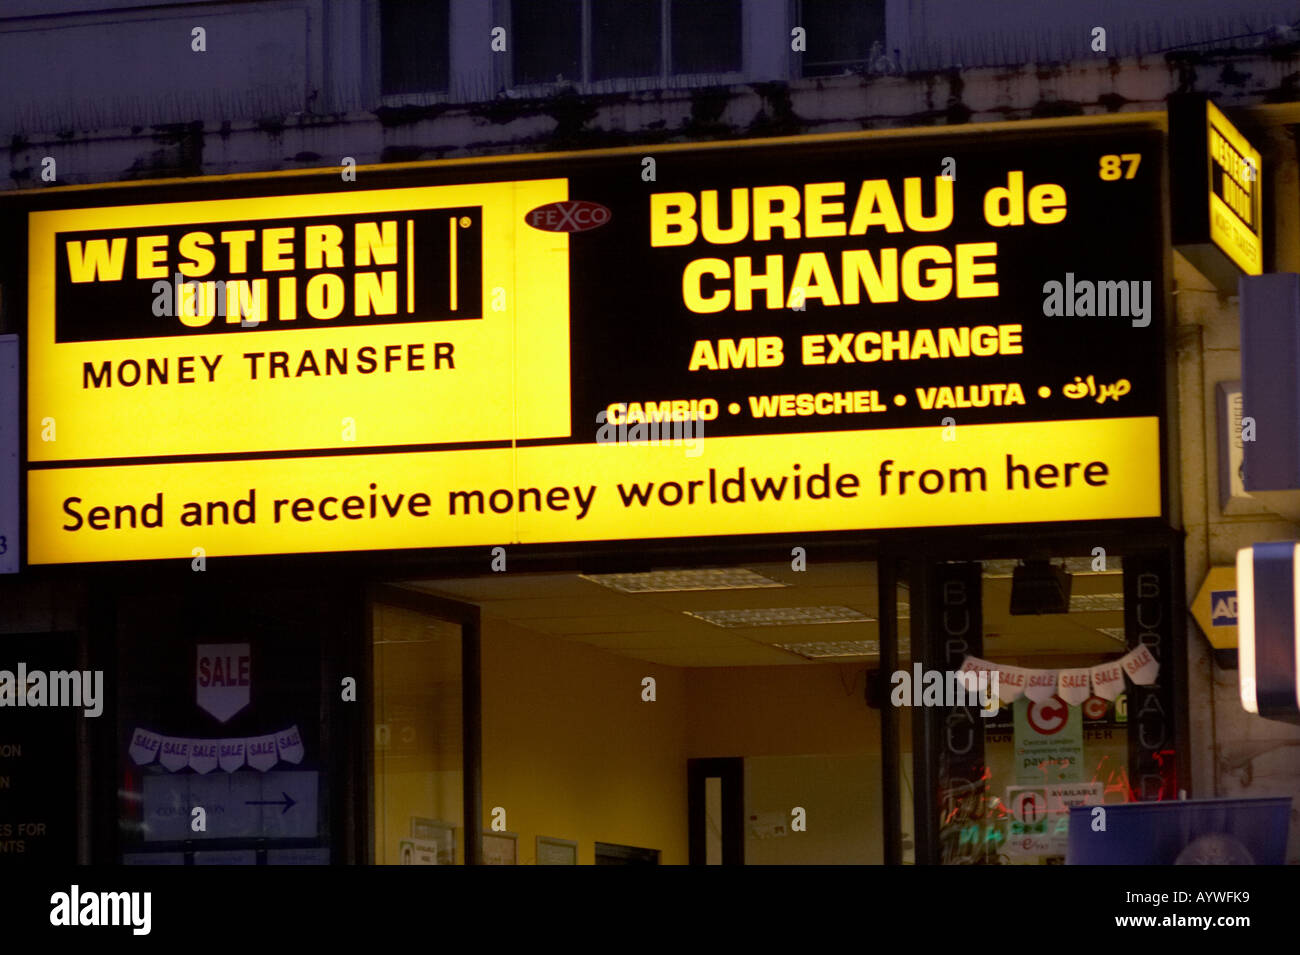 western union money transfer bureau de change in london uk